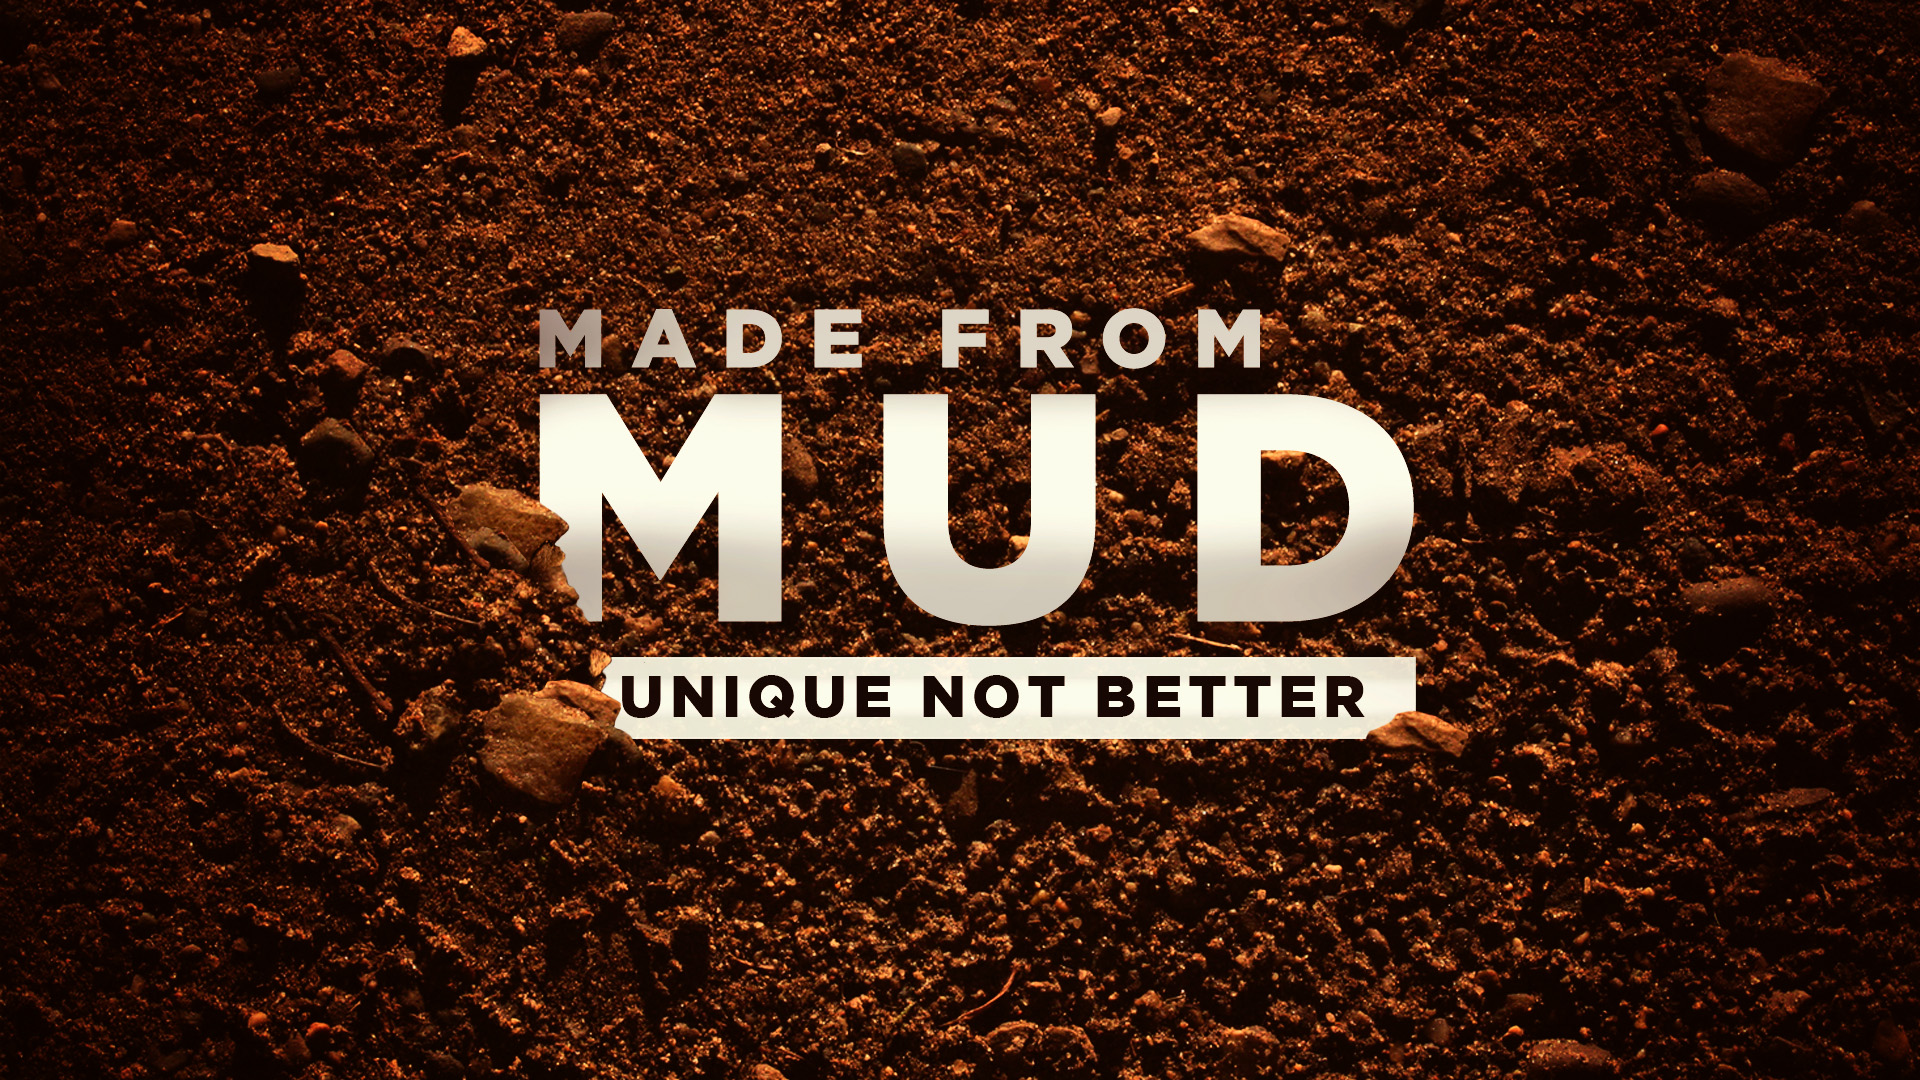 Made From Mud